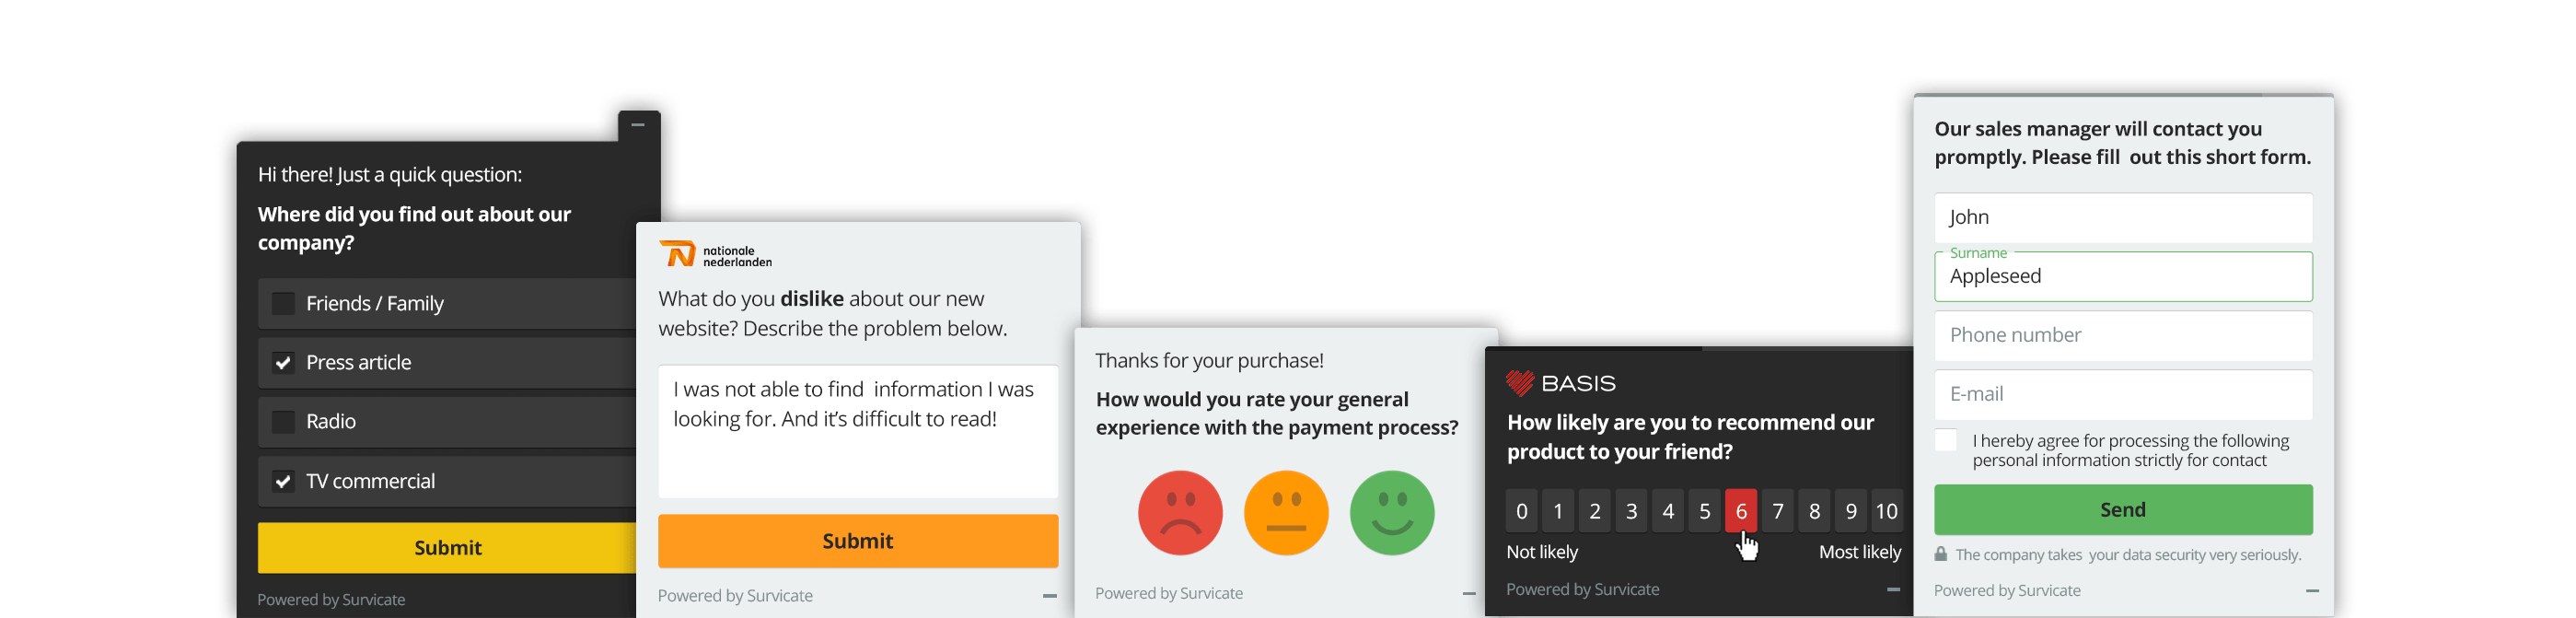 targeted online website survey software with custom design